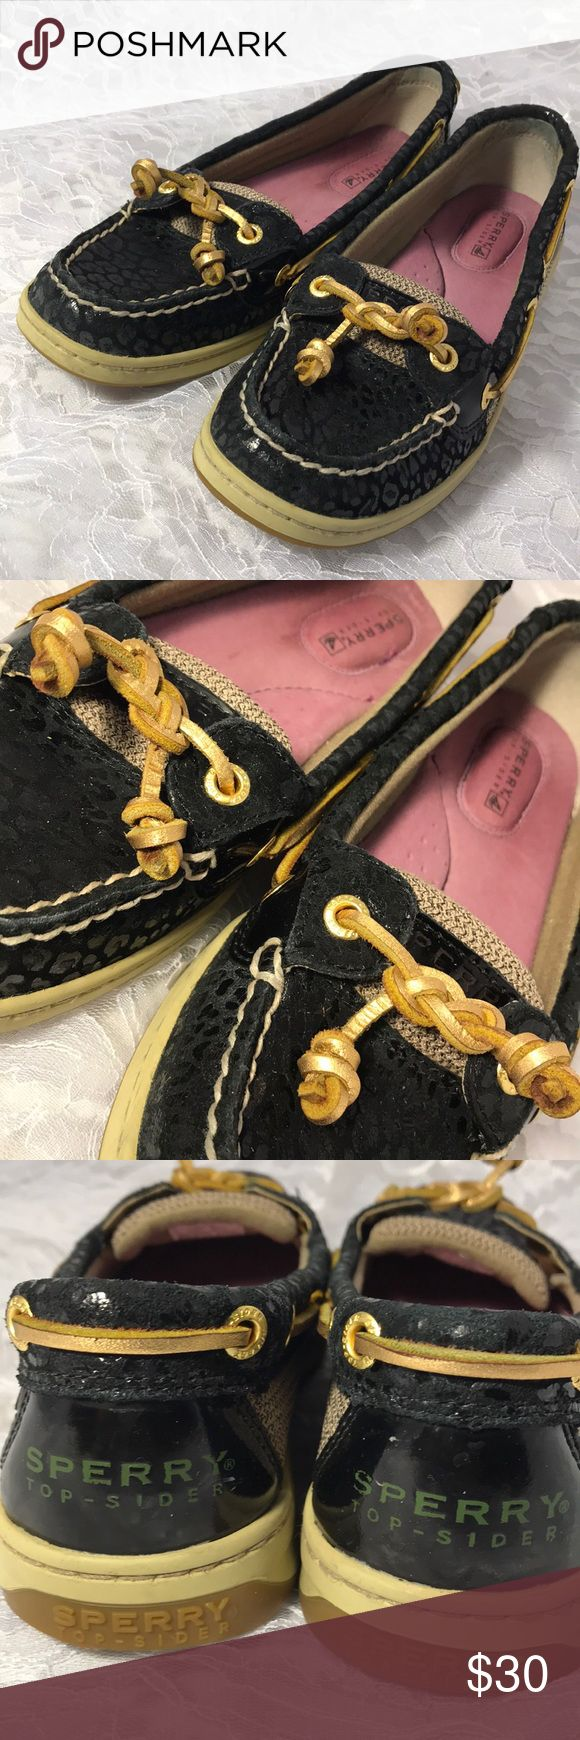 Sperry Angelfish Boat Shoe in Black and Gold. Like New! 👍🏼  Celtic Knot LACE 🤩😍🤯  No Box 😩👎🏼 Sperry Top-Sider Shoes Flats & Loafers